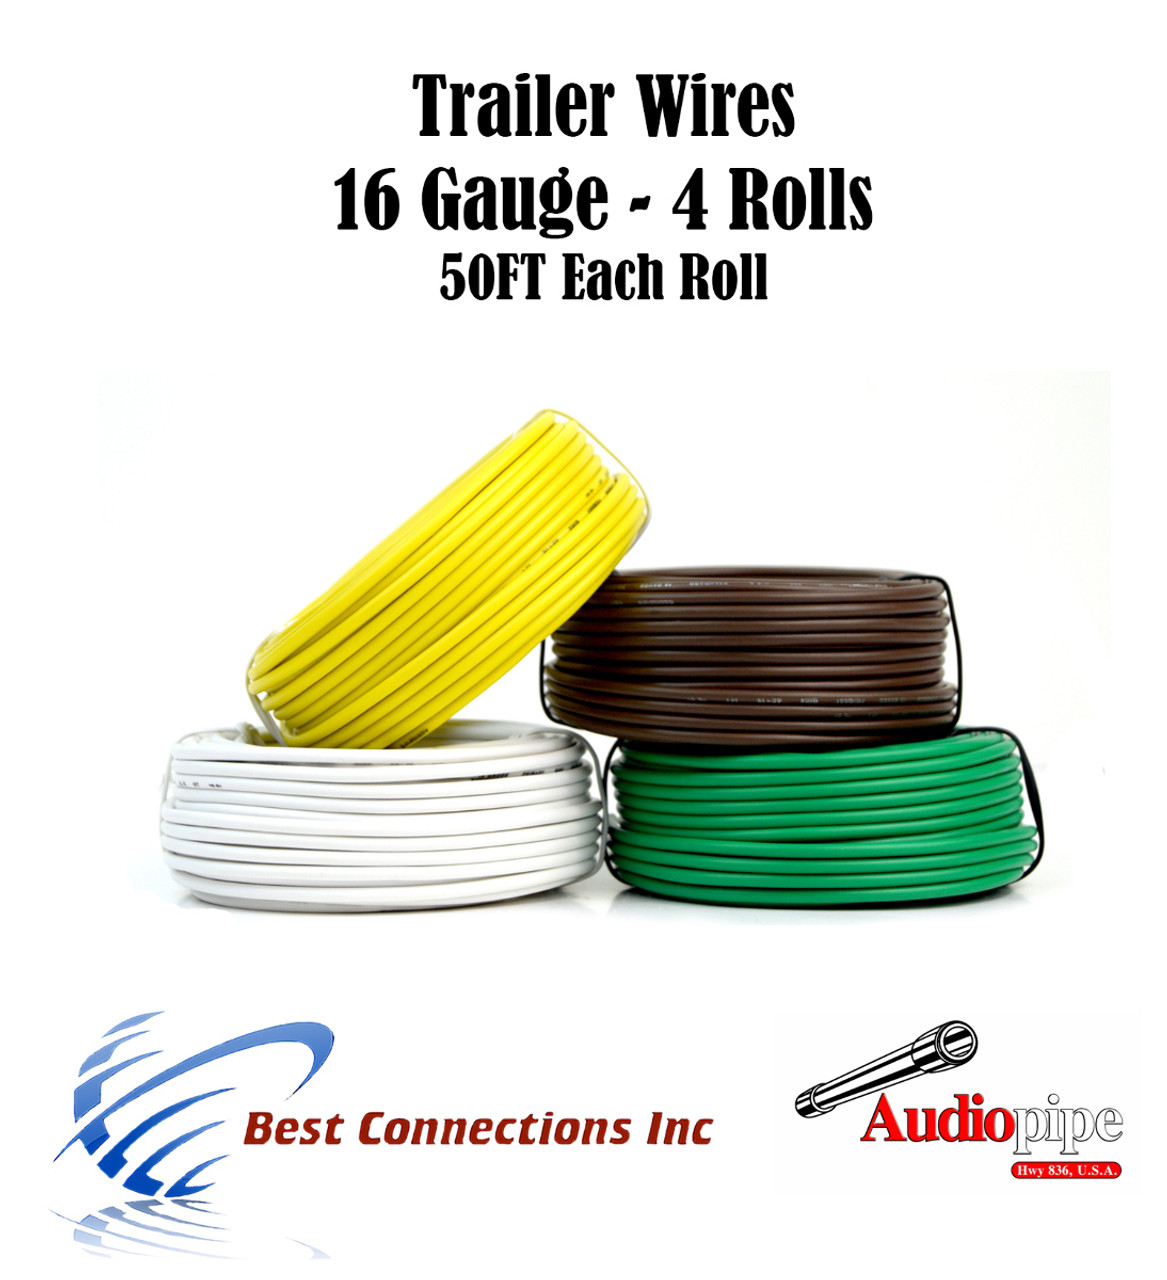 4 Way Trailer Wire Light Cable for Harness 50 FT Each Roll 16 Gauge ...